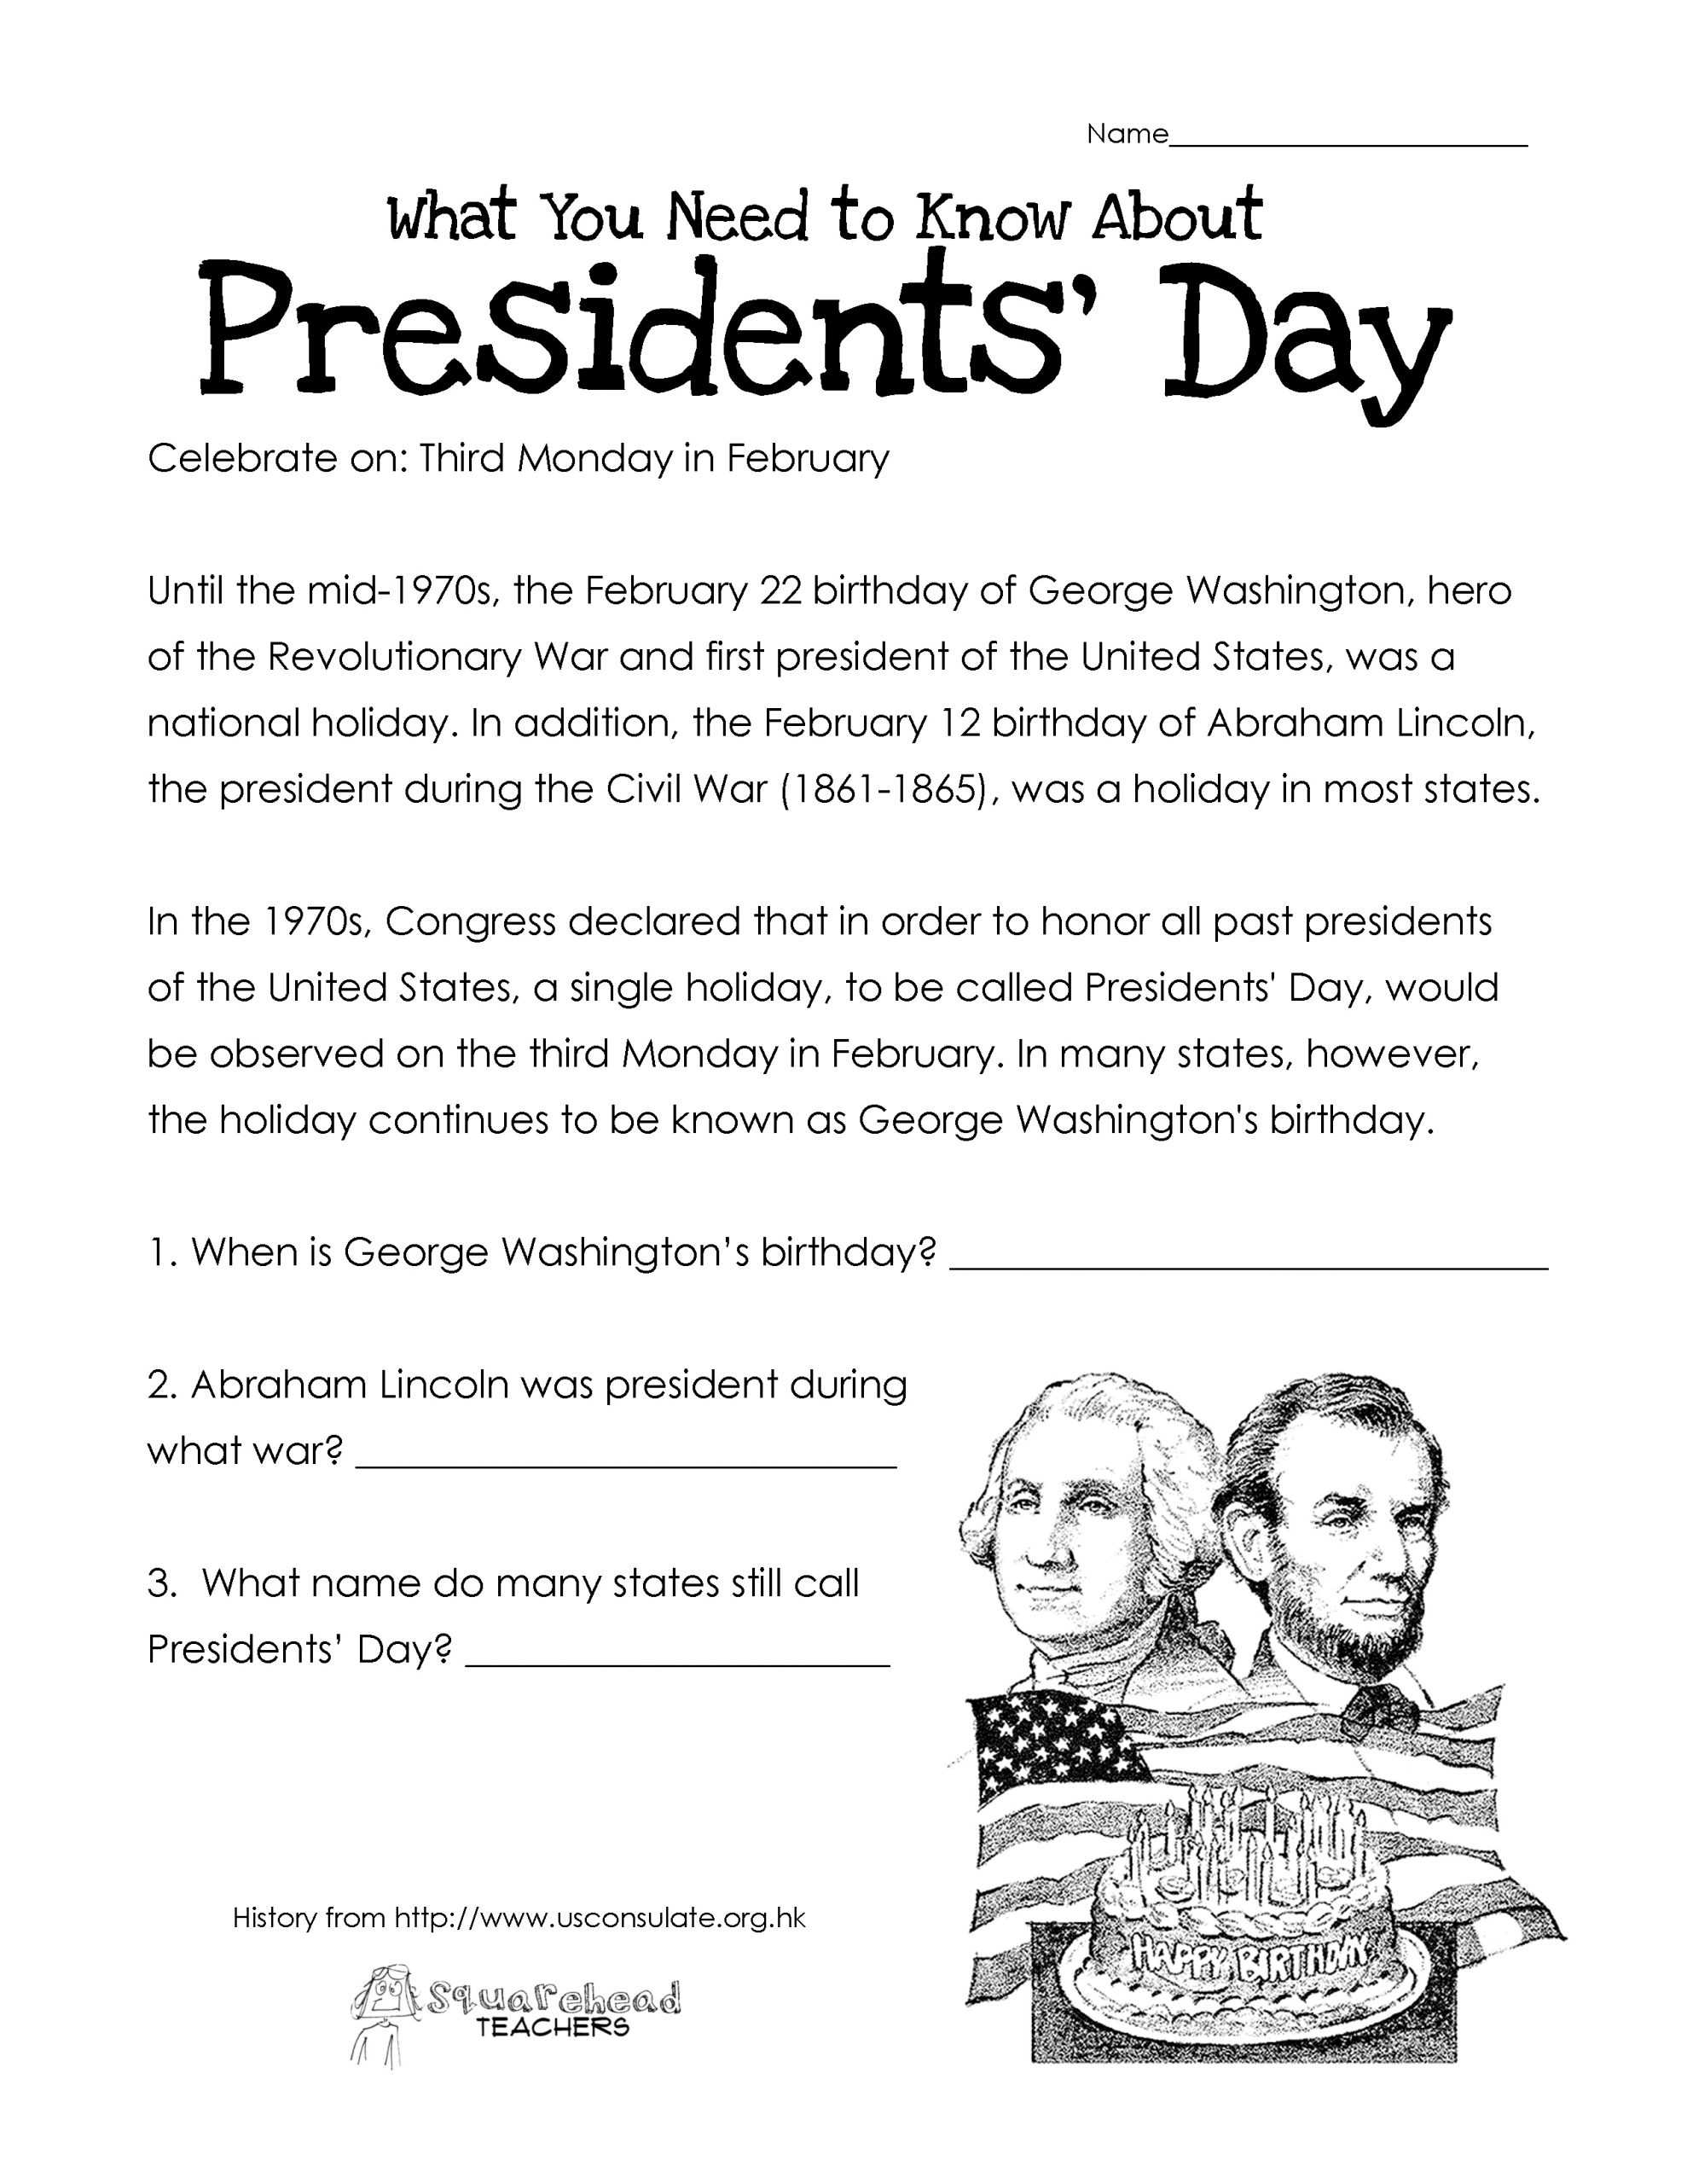 Free Printable Presidents Day Worksheets That Are Versatile